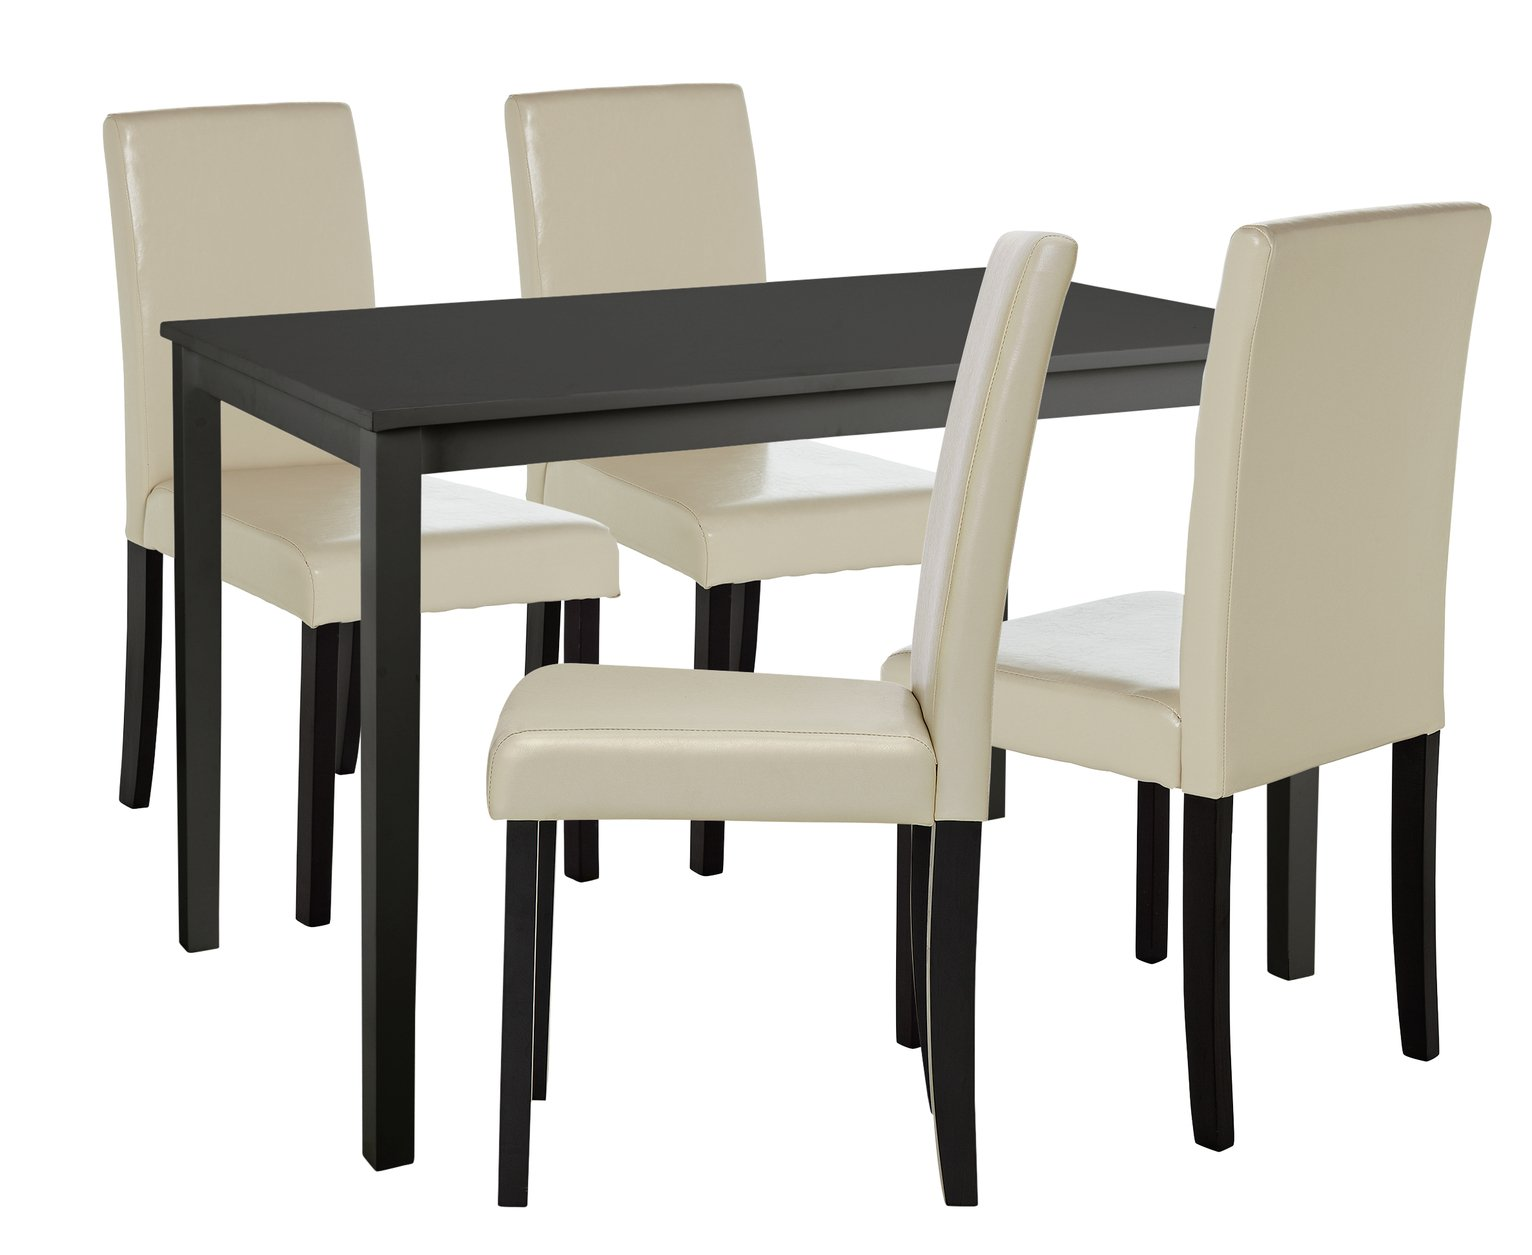 Image of HOME Alcott Dining Table & 4 Chairs - Cream